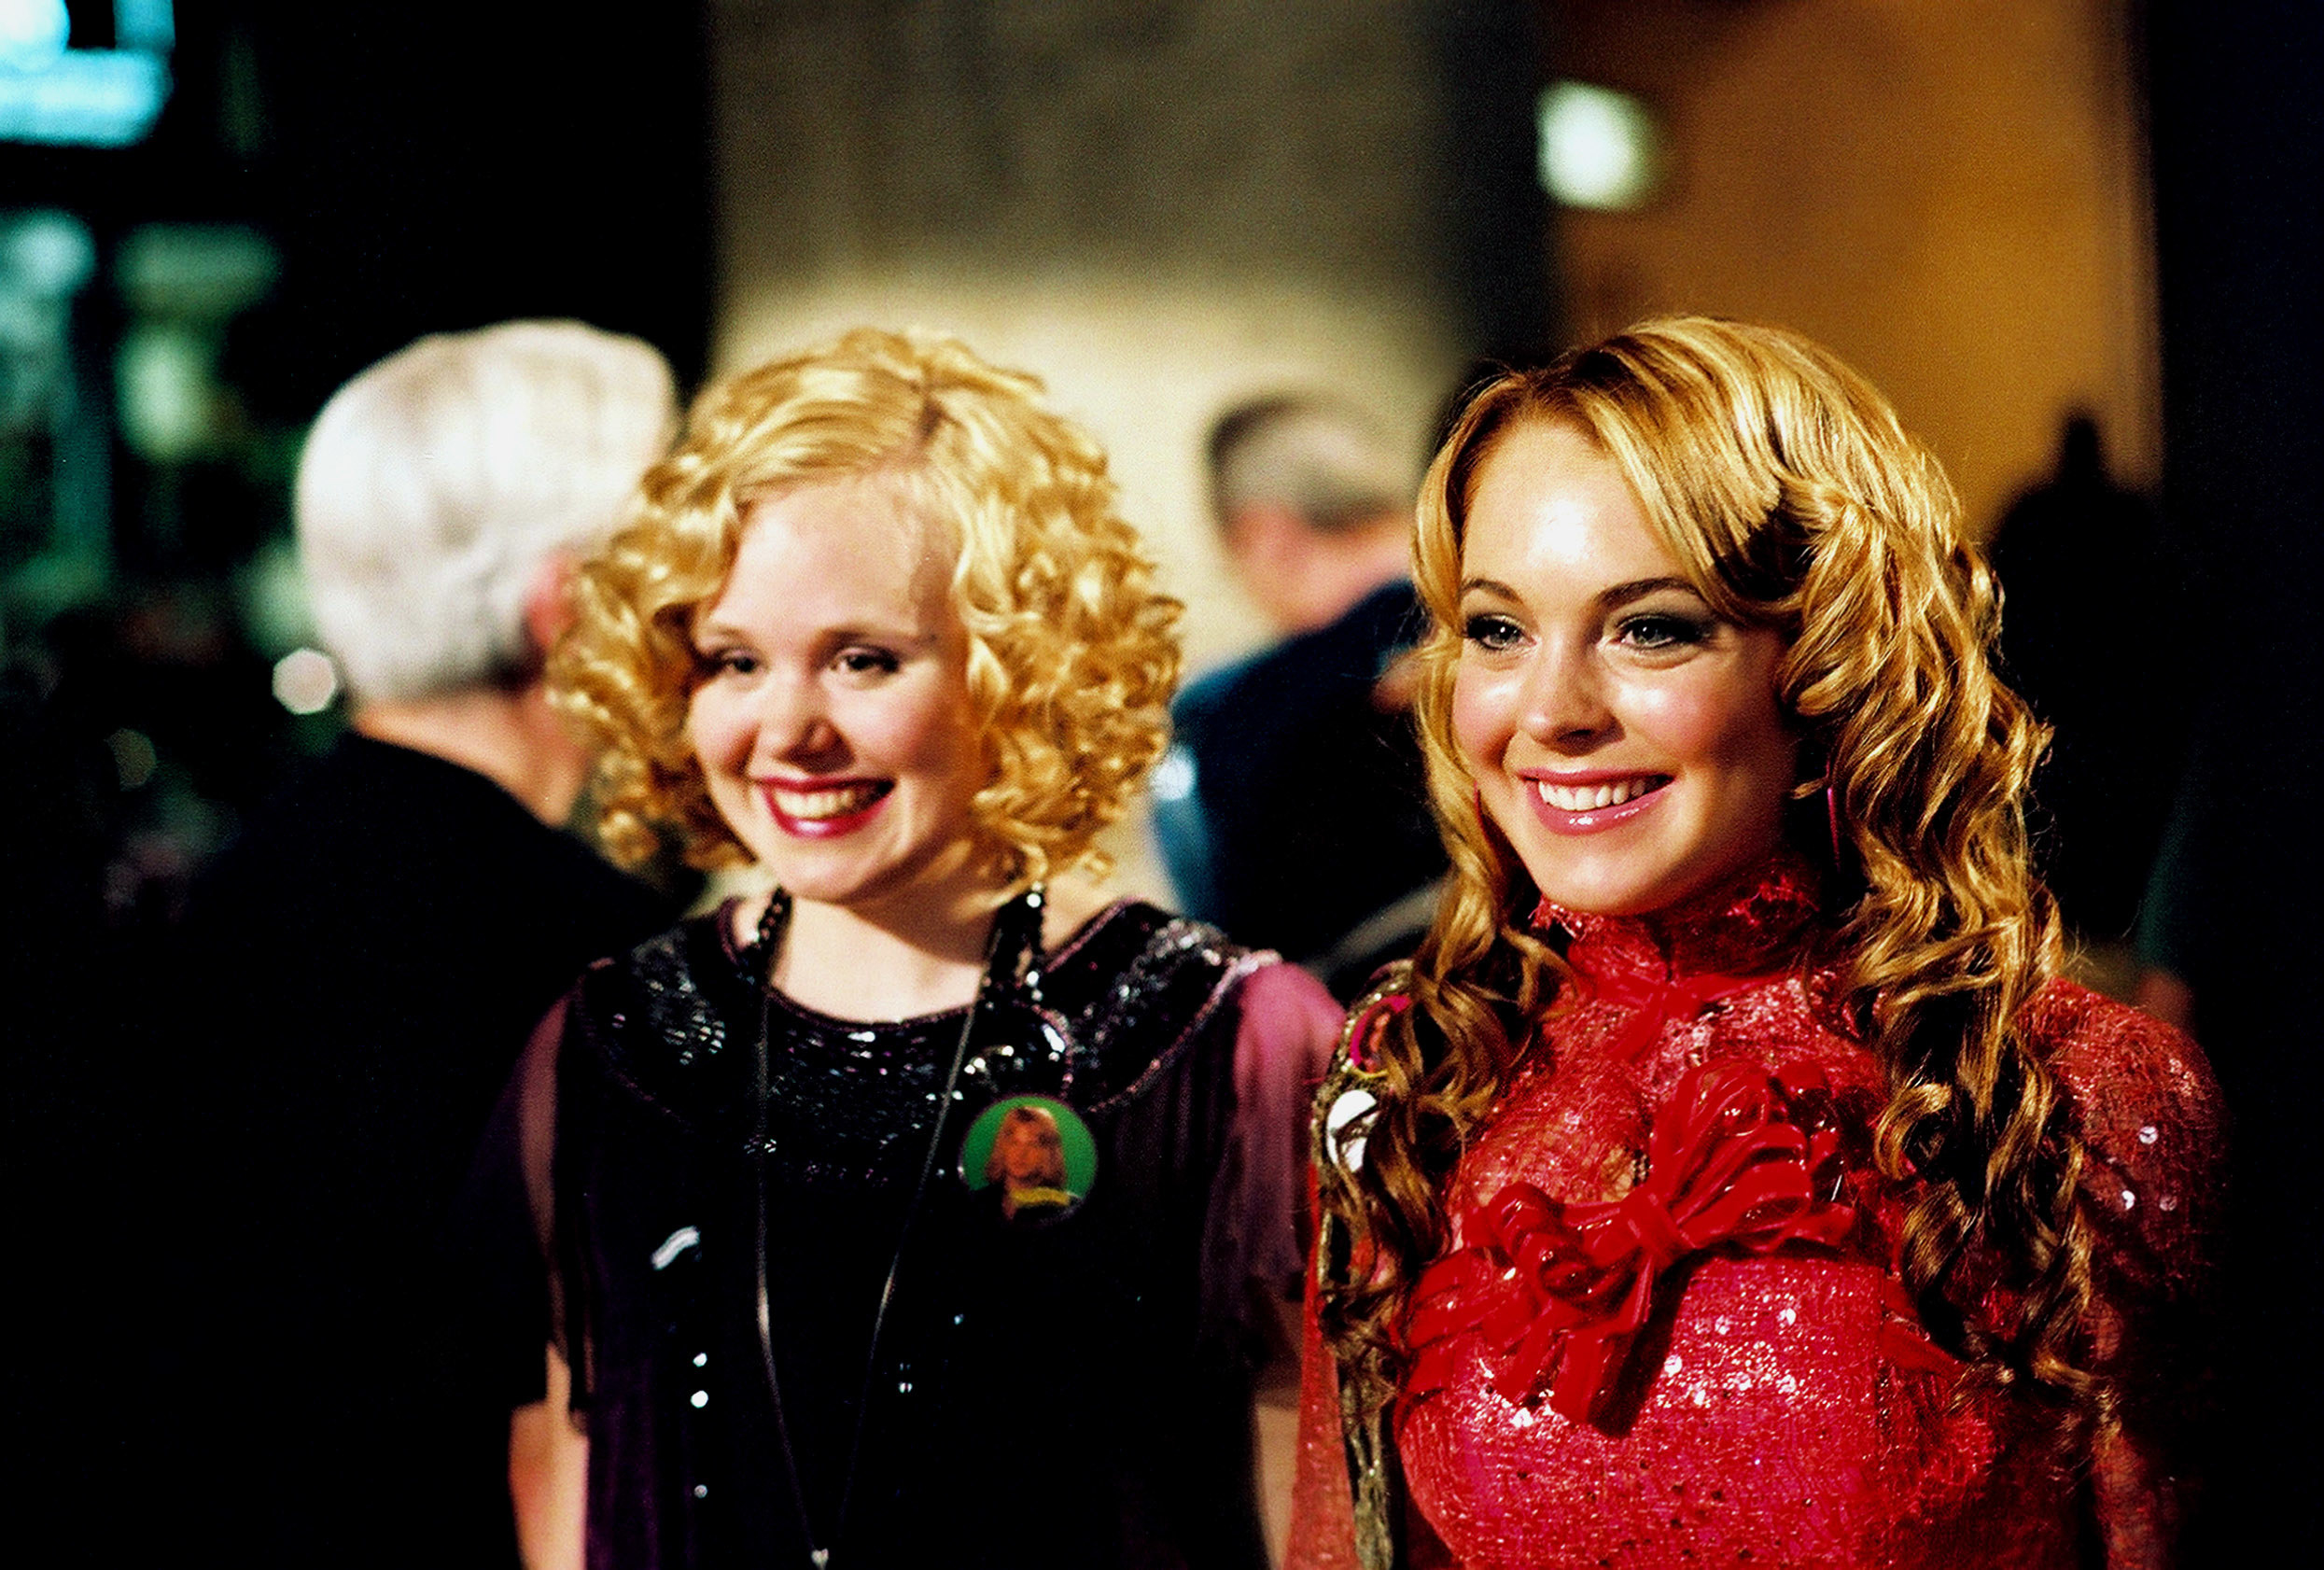 Alison Pill and Lindsay Lohan in the movie Confessions of a Teenage Drama Queen